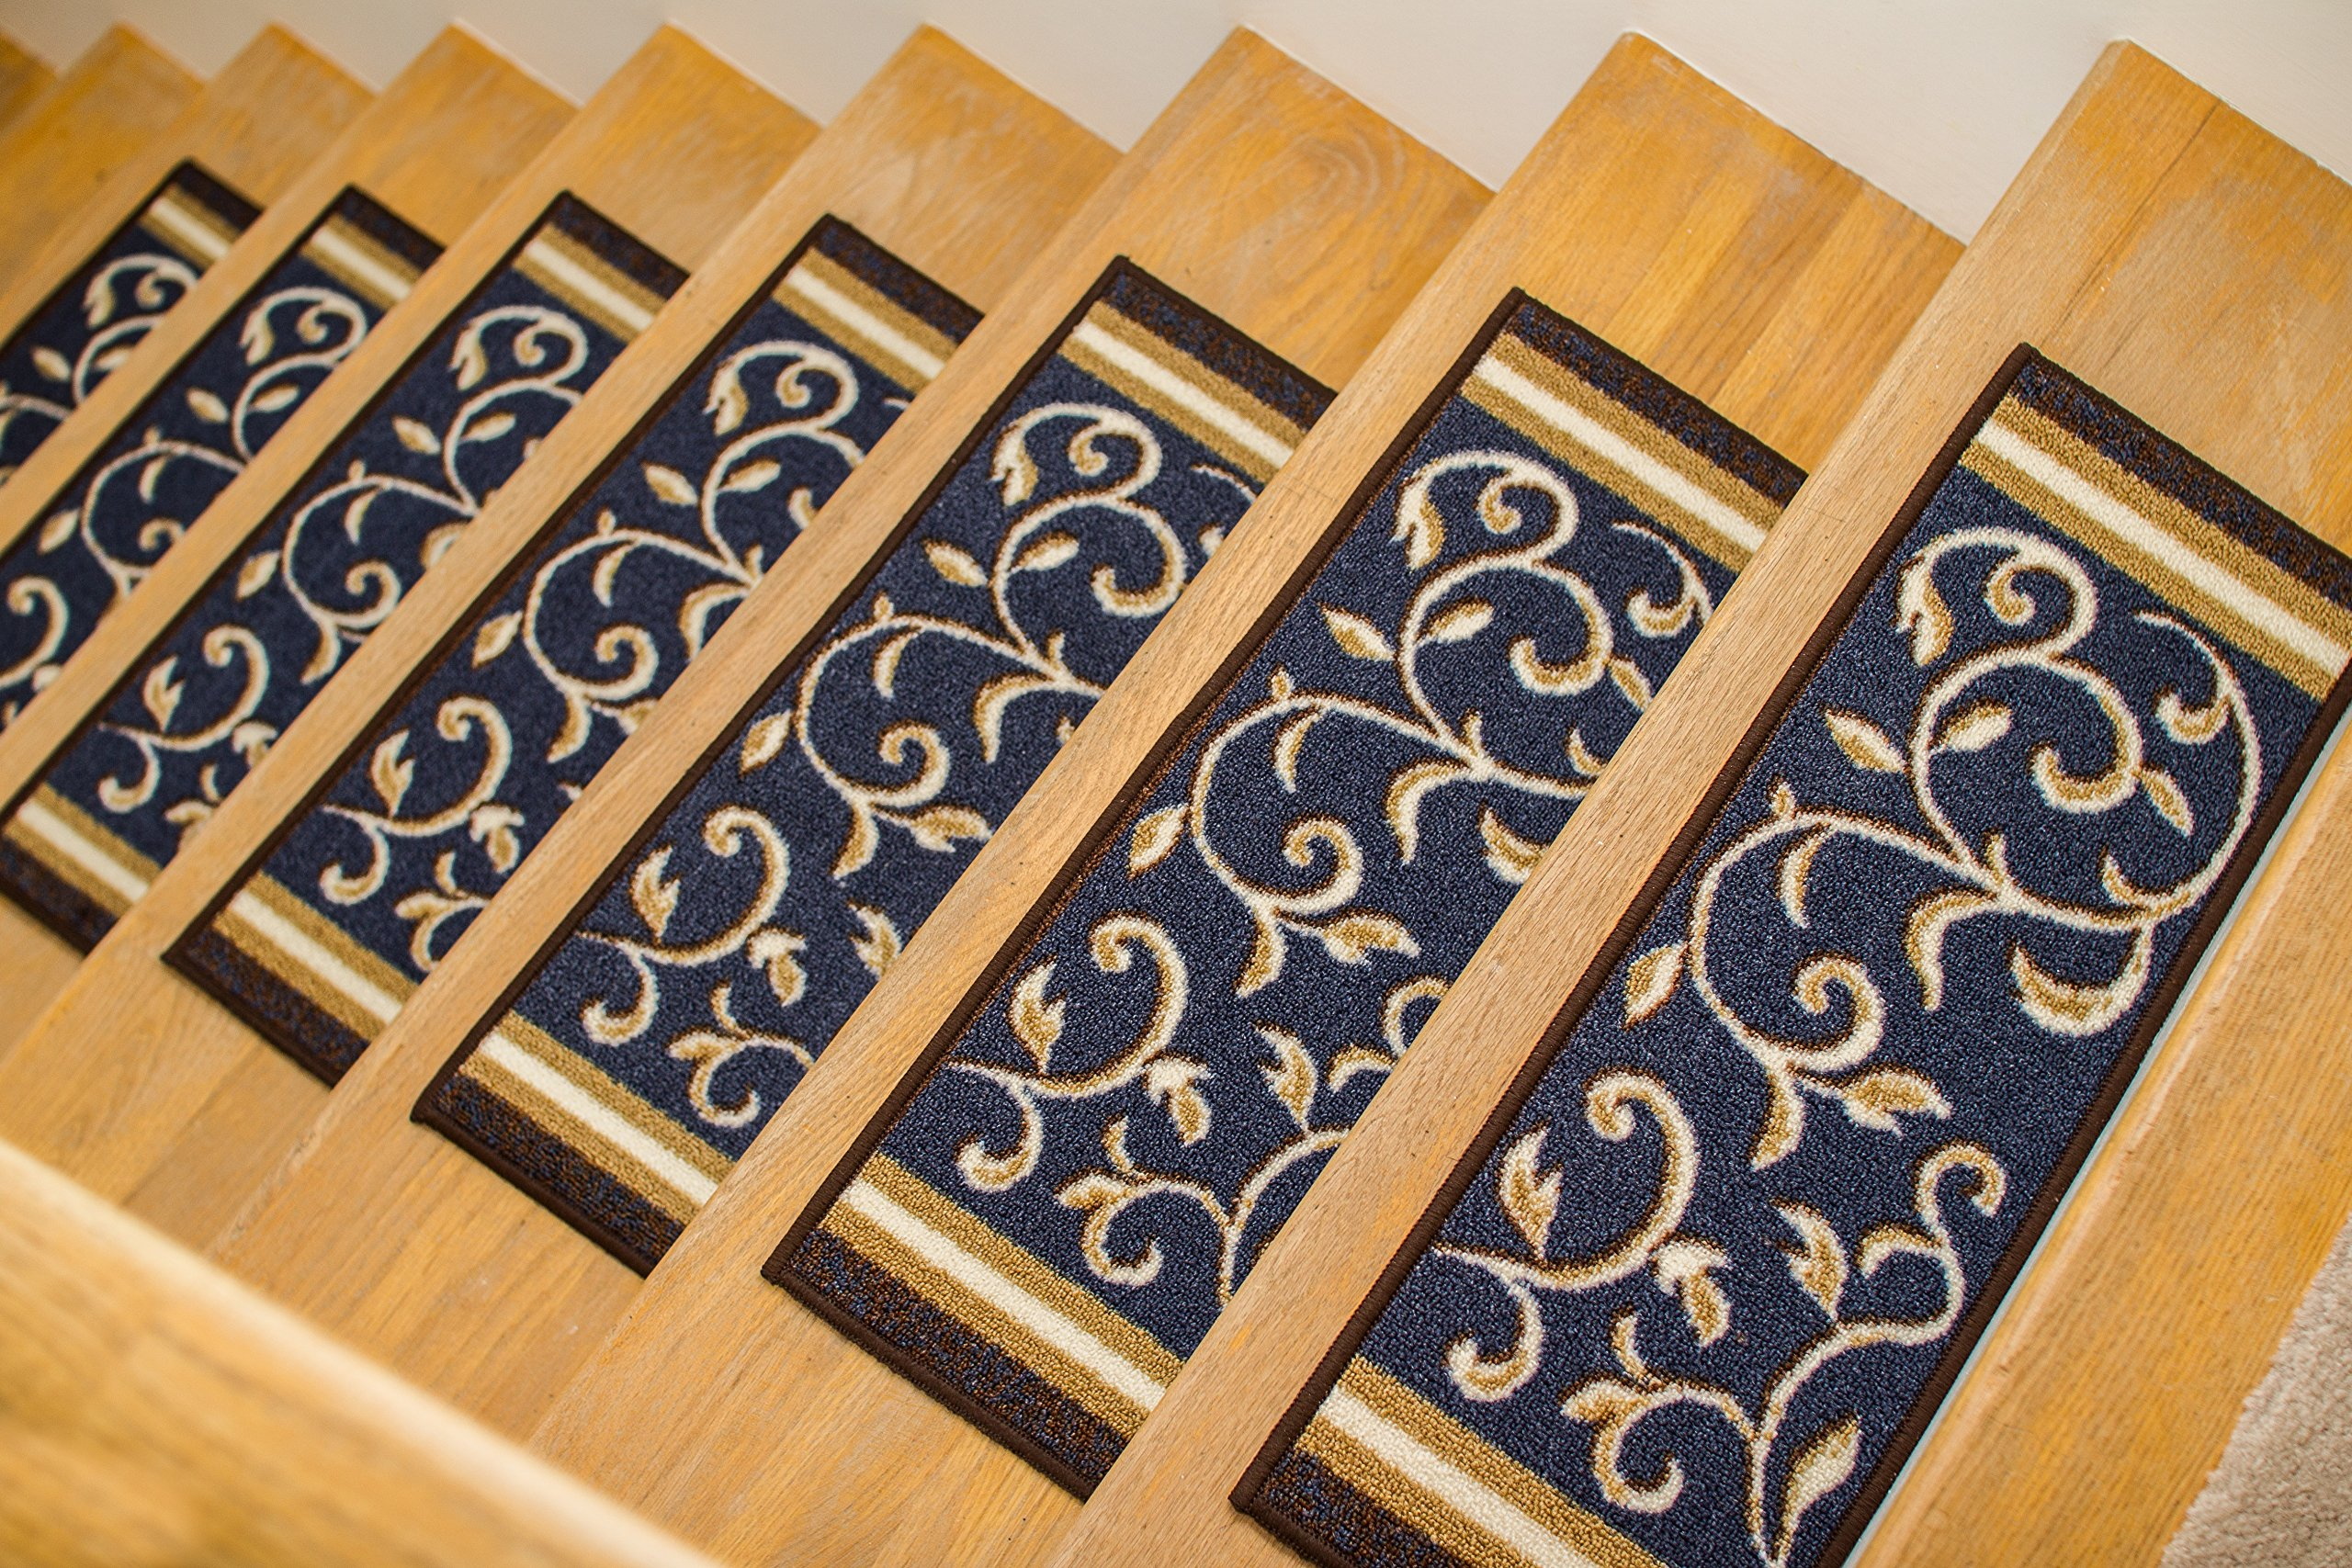 shipping x of garden mats slip rubber over backing overstock set orders on treads home product stair free non